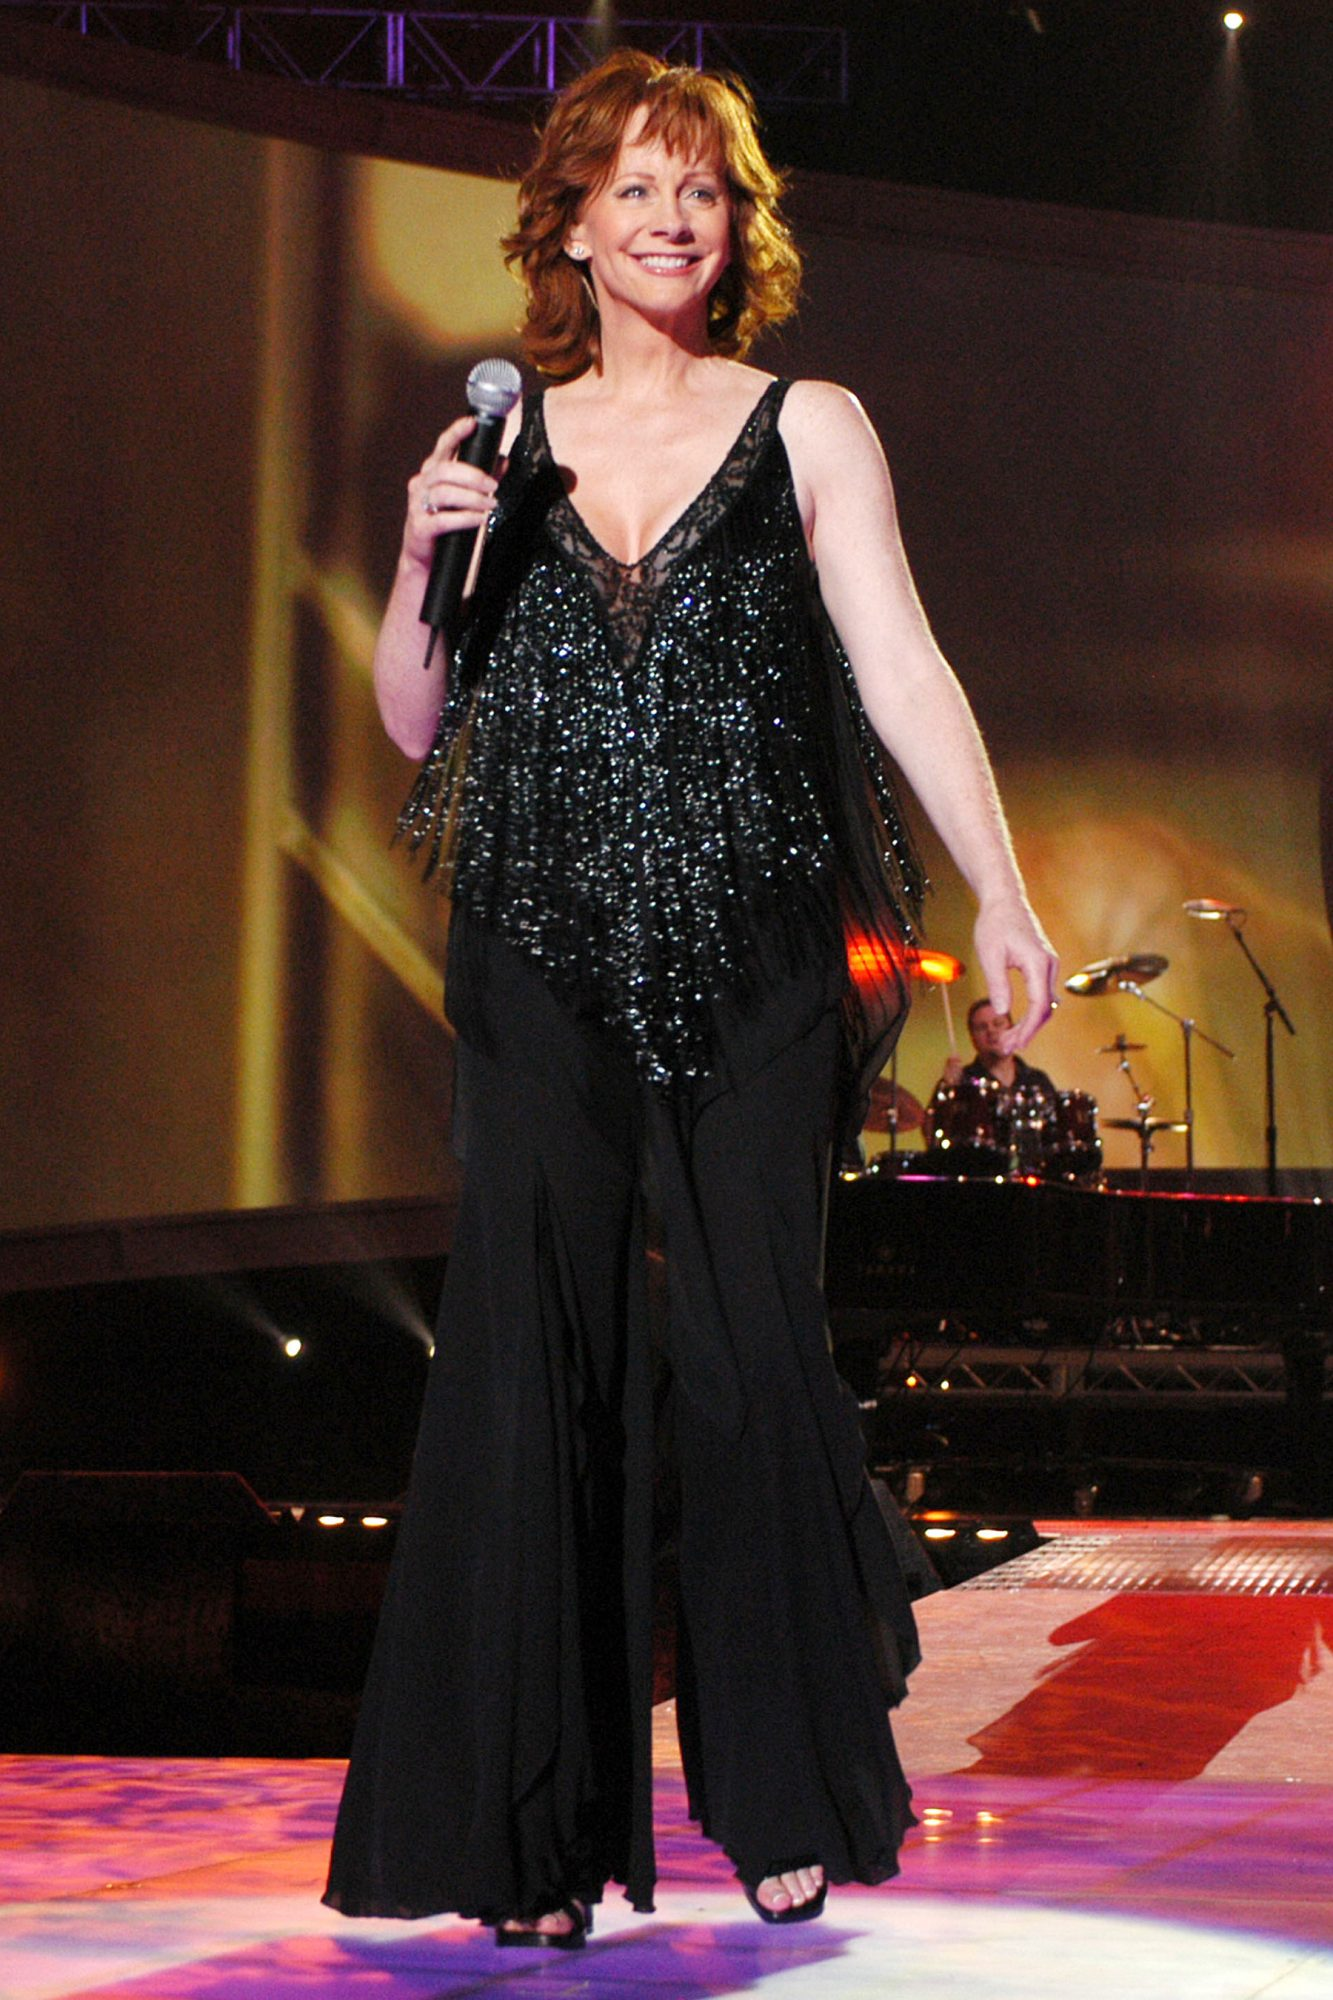 39th Annual Academy of Country Music Awards - Dress Rehearsal